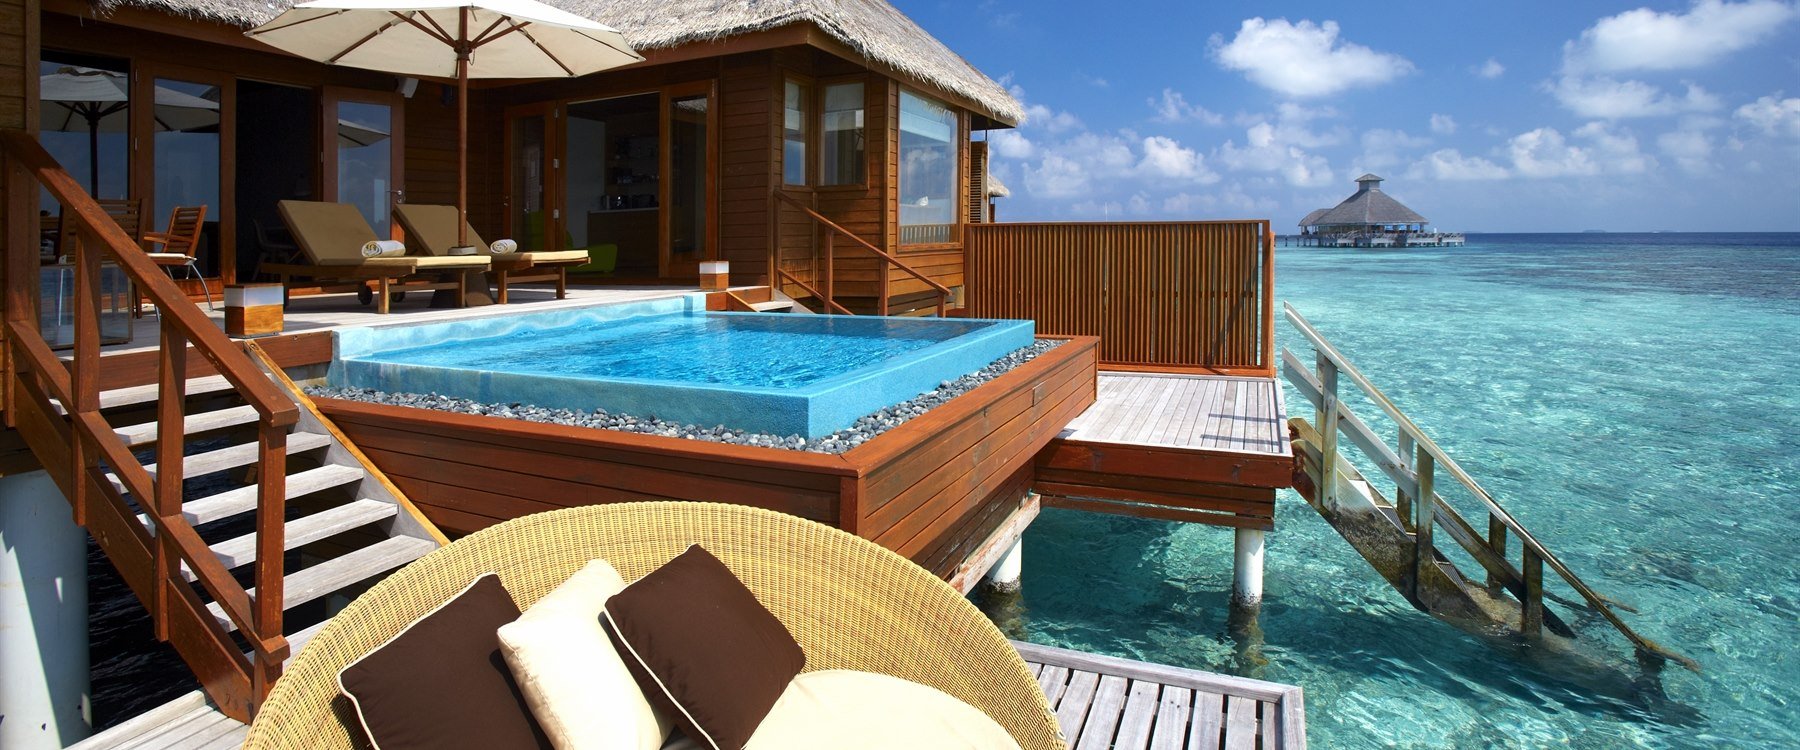 Ocean Bungalow with Pool at Huvafen Fushi, Maldives